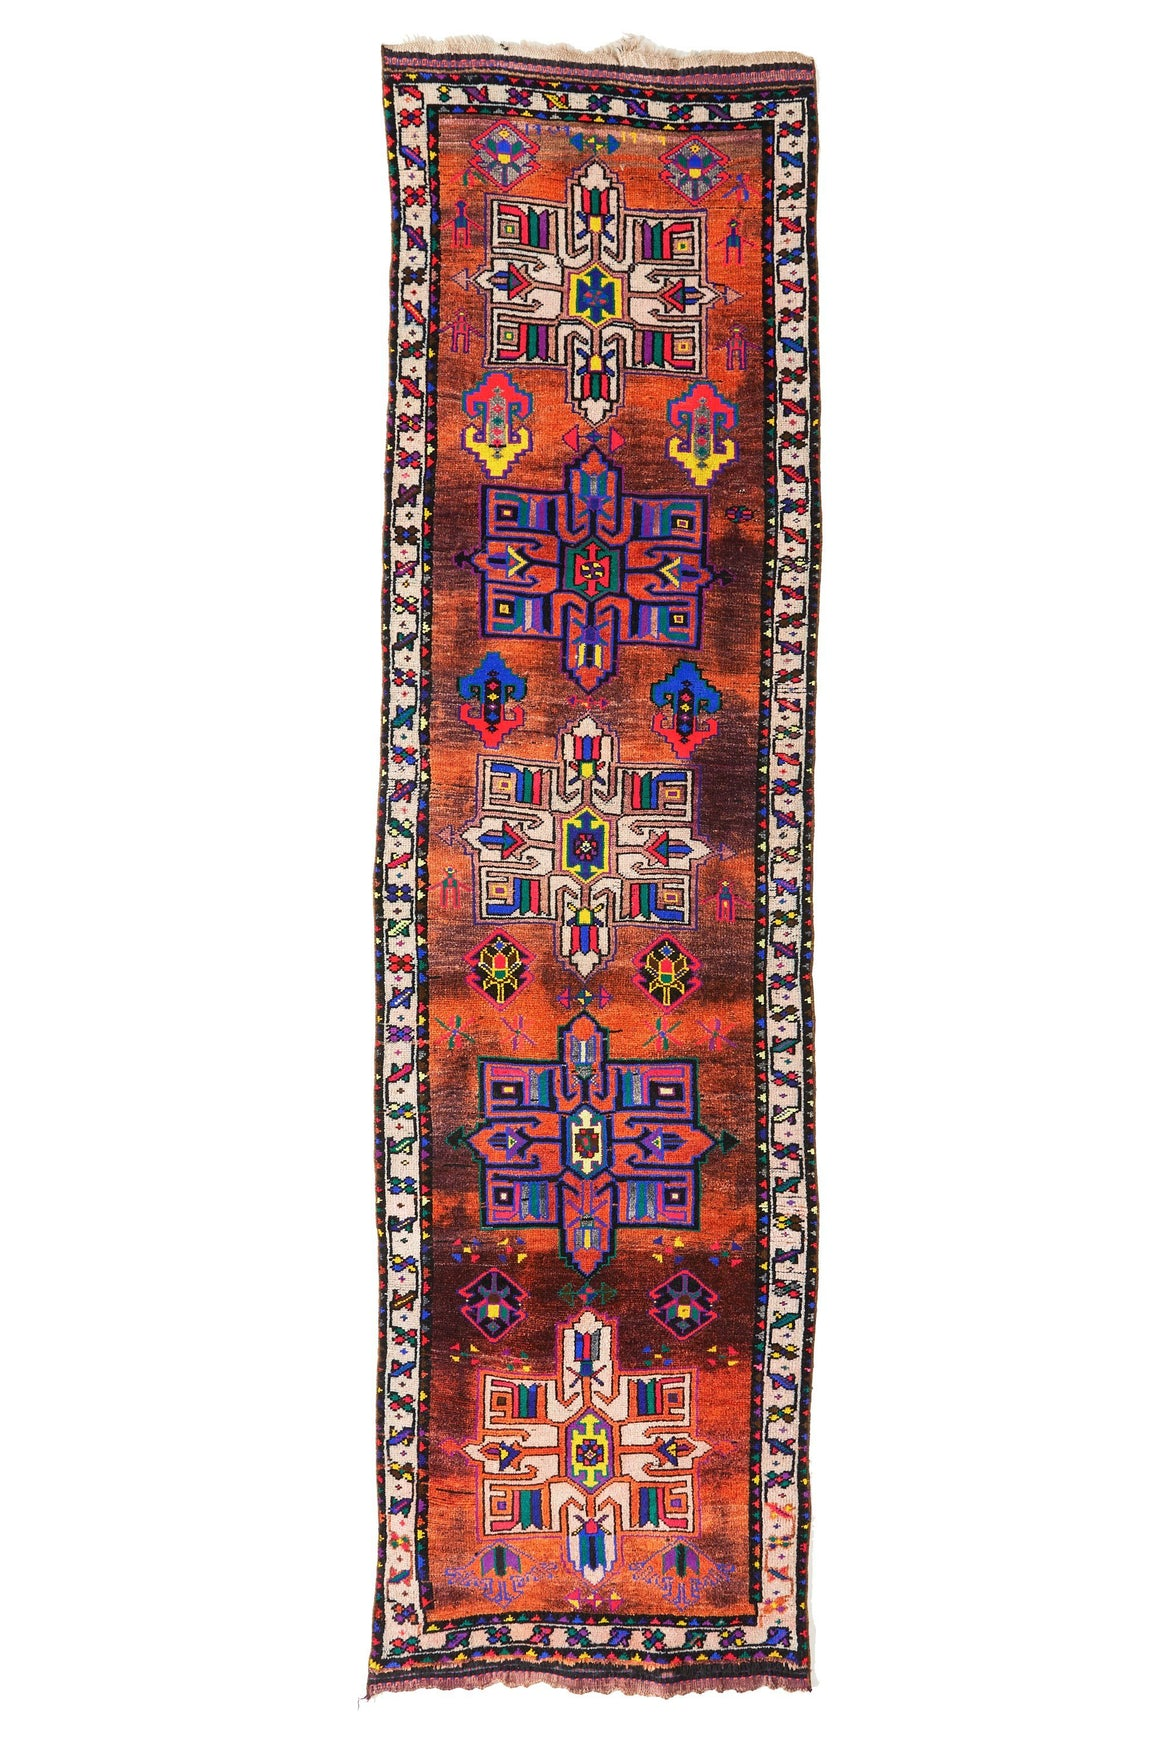 "'Splendid' Turkish Vintage Runner Rug - 2'10"" x 10'8"" - Canary Lane - Curated Textiles"